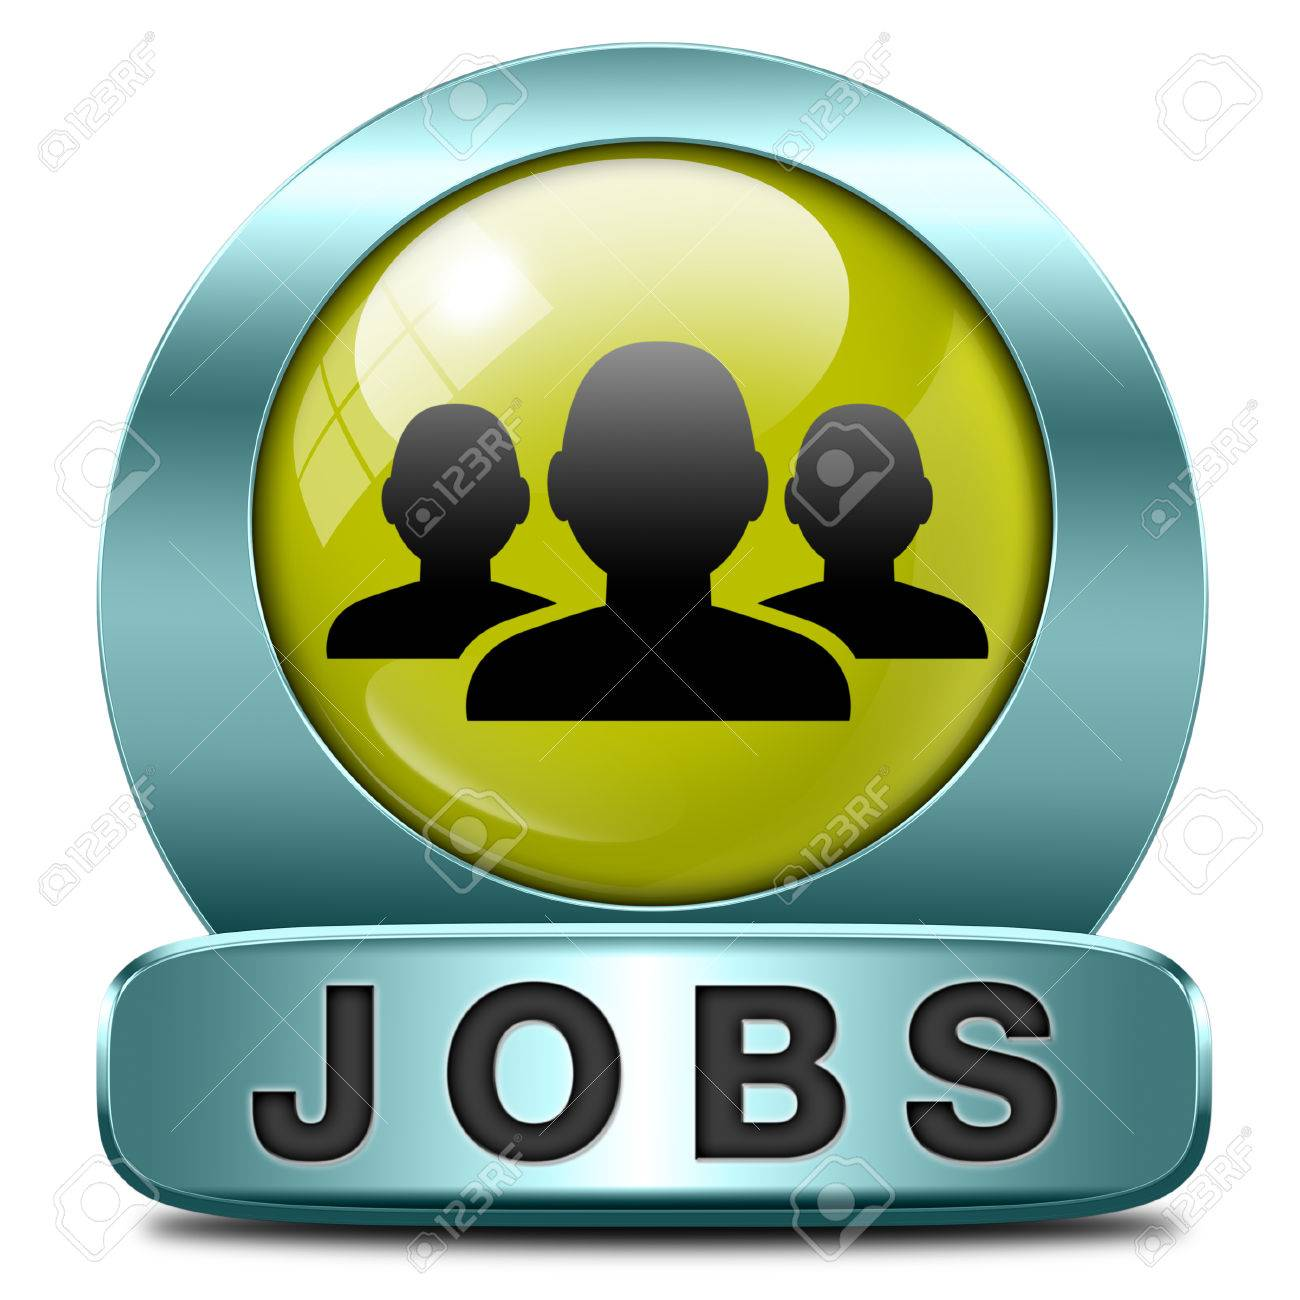 job search vacancy for jobs dream career move help wanted stock photo job search vacancy for jobs dream career move help wanted job ad recruitment job icon job button hiring now